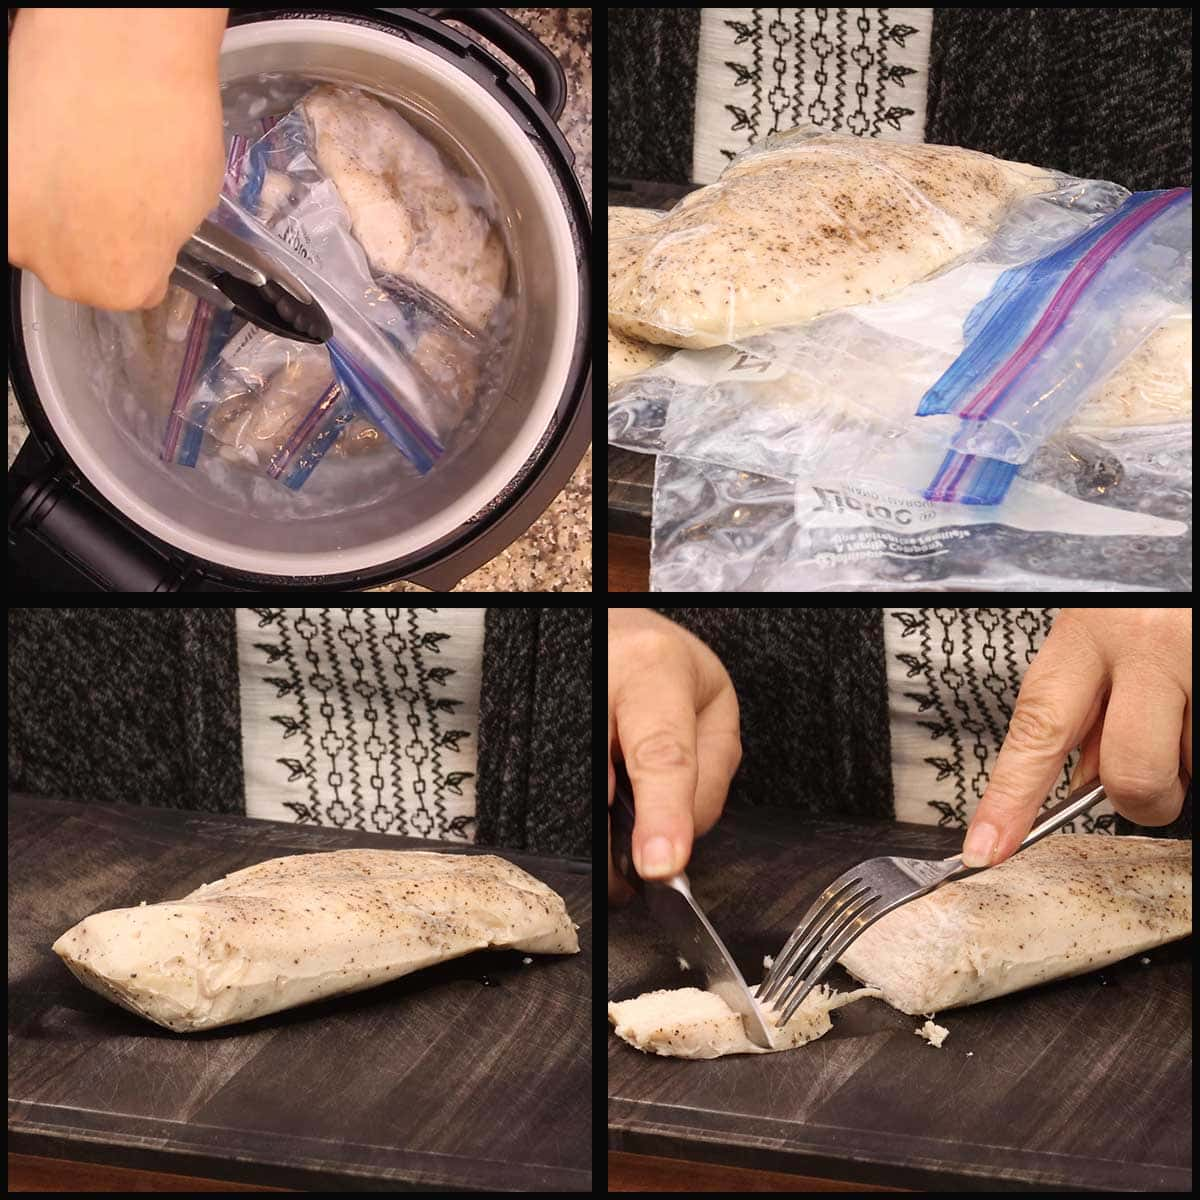 removing chicken breast after sous vide cooking and slicing them